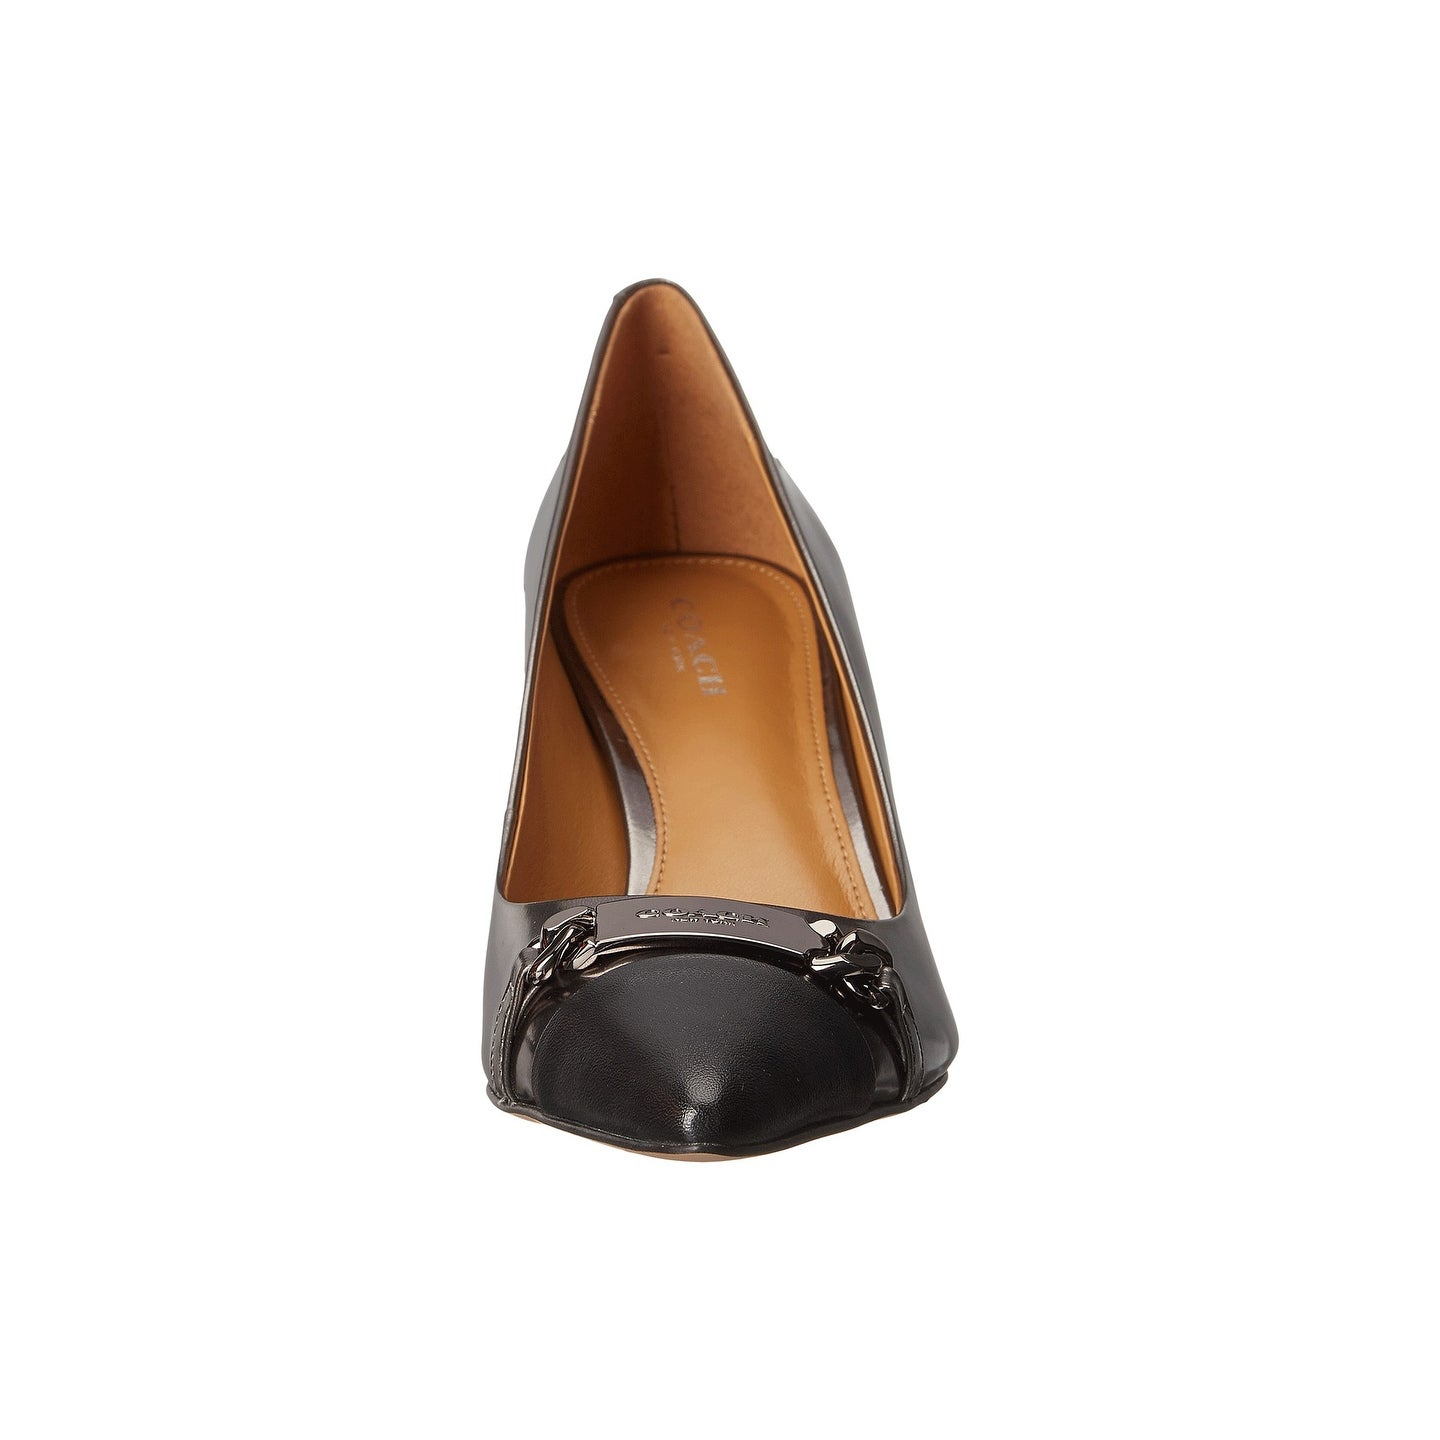 b87a18f377c Shop Coach Womens Bowery Pointed Toe Classic Pumps - Ships To Canada -  Overstock.ca - 14527279